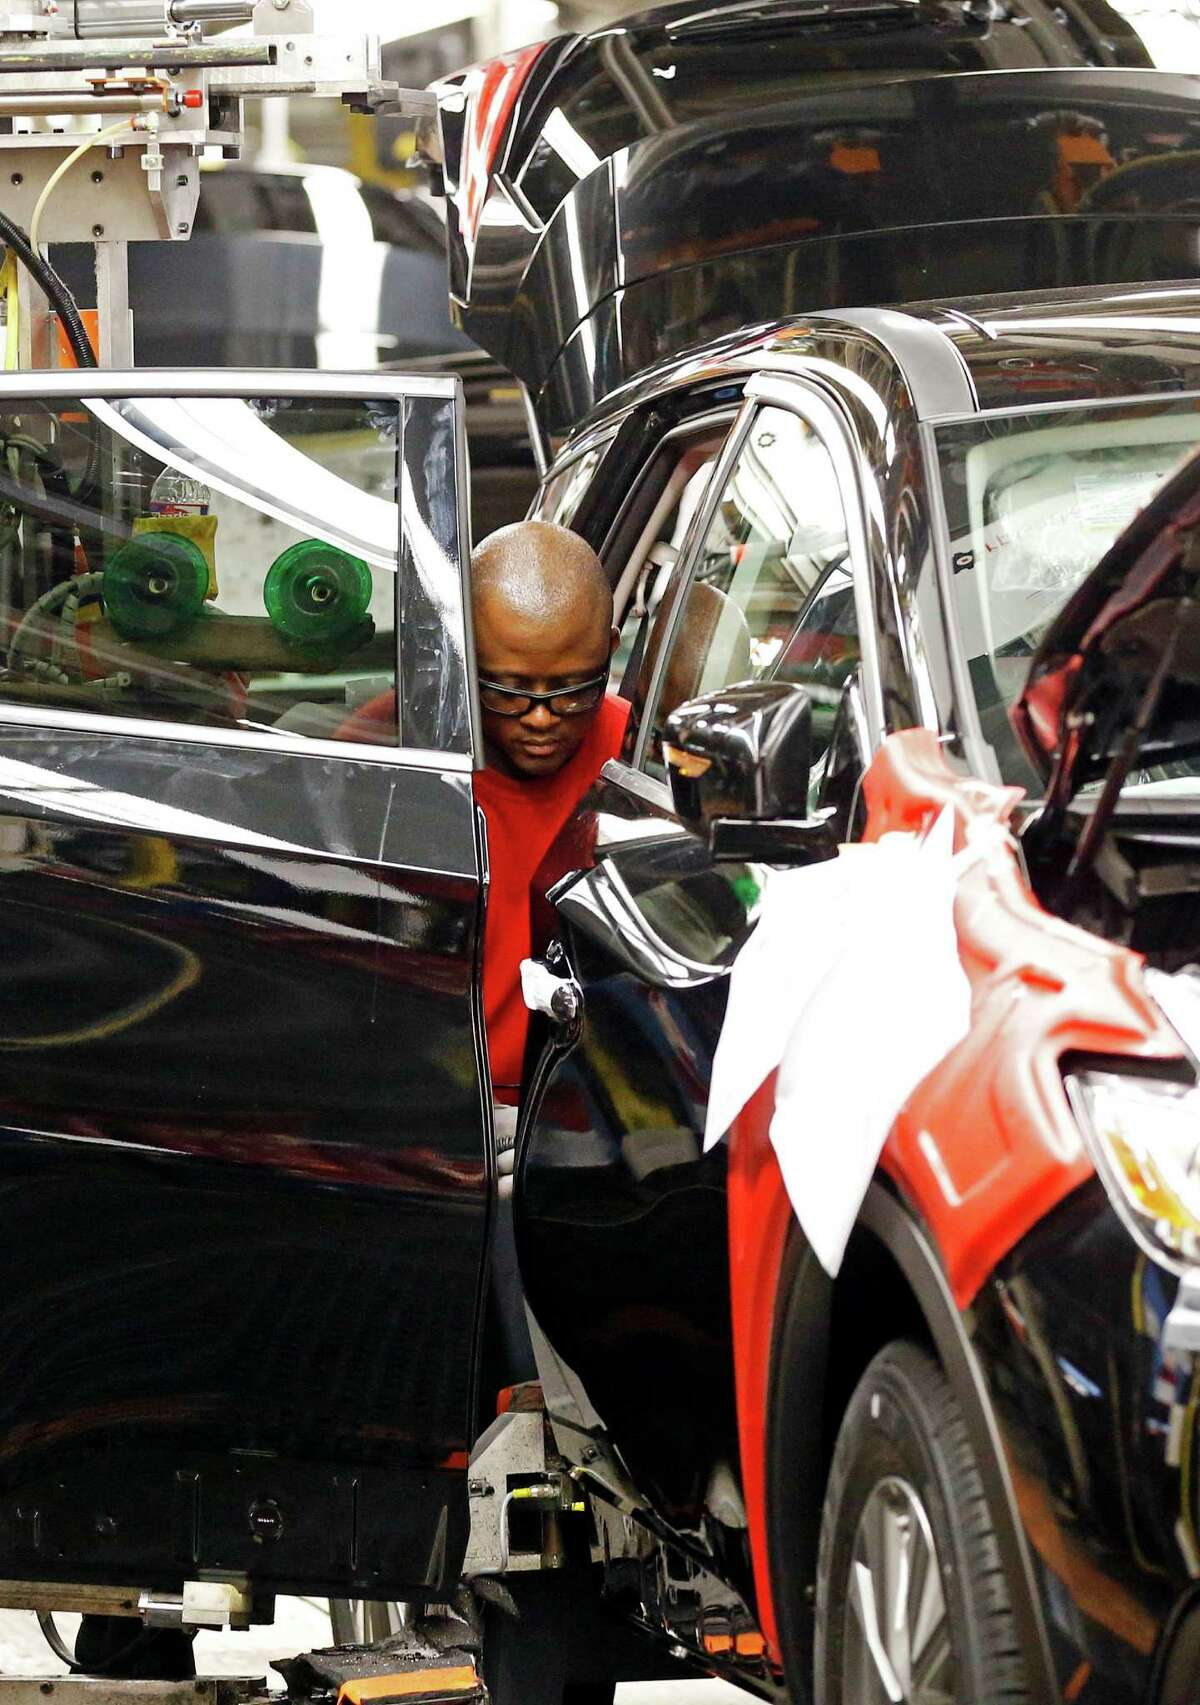 In this April 6, 2016, photograph, a technician works on a door assembly for a Nissan Altima on the assembly line at the Nissan Canton Vehicle Assembly Plant in Canton, Miss. On Thursday, Sept. 1, 2016, major automakers report sales figures for August. (AP Photo/Rogelio V. Solis) ORG XMIT: NYBZ402